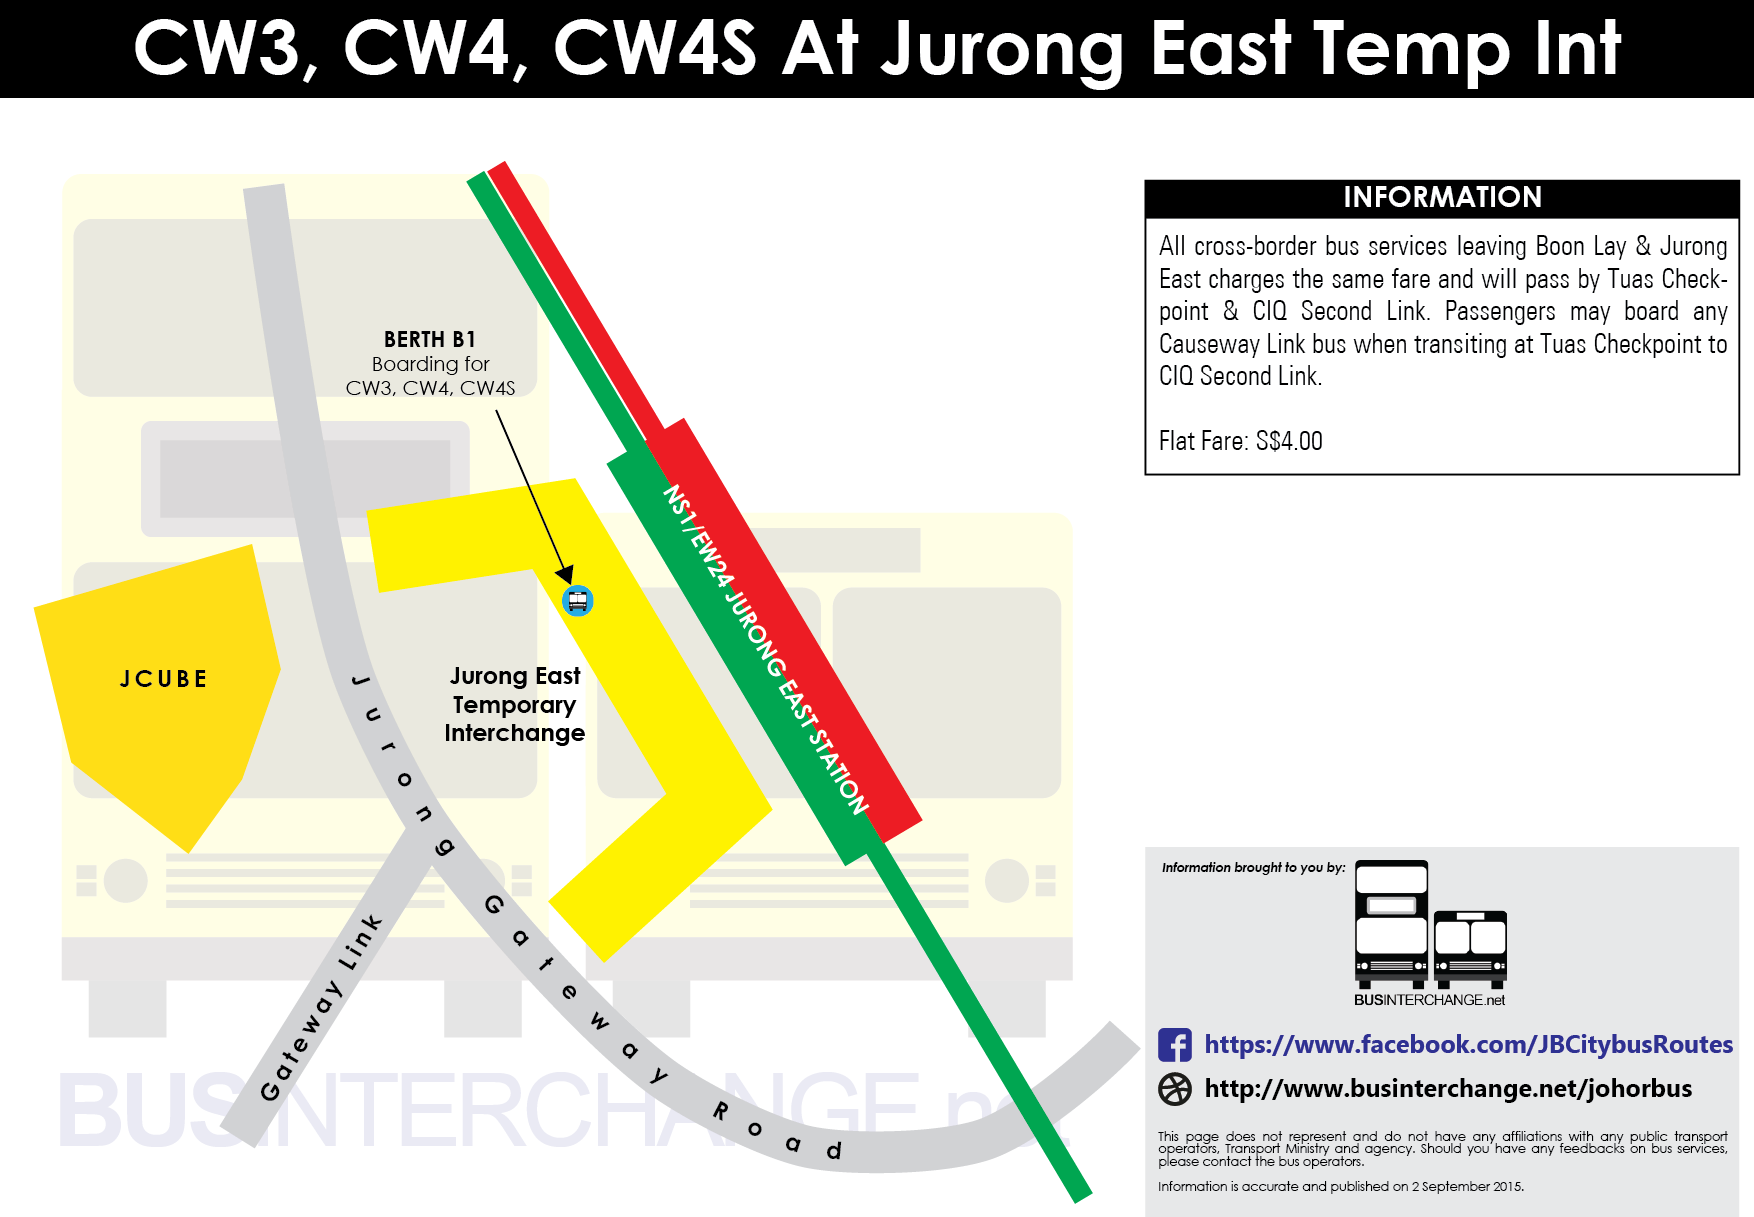 Boarding location at Jurong East for CW3, CW4 and CW4S